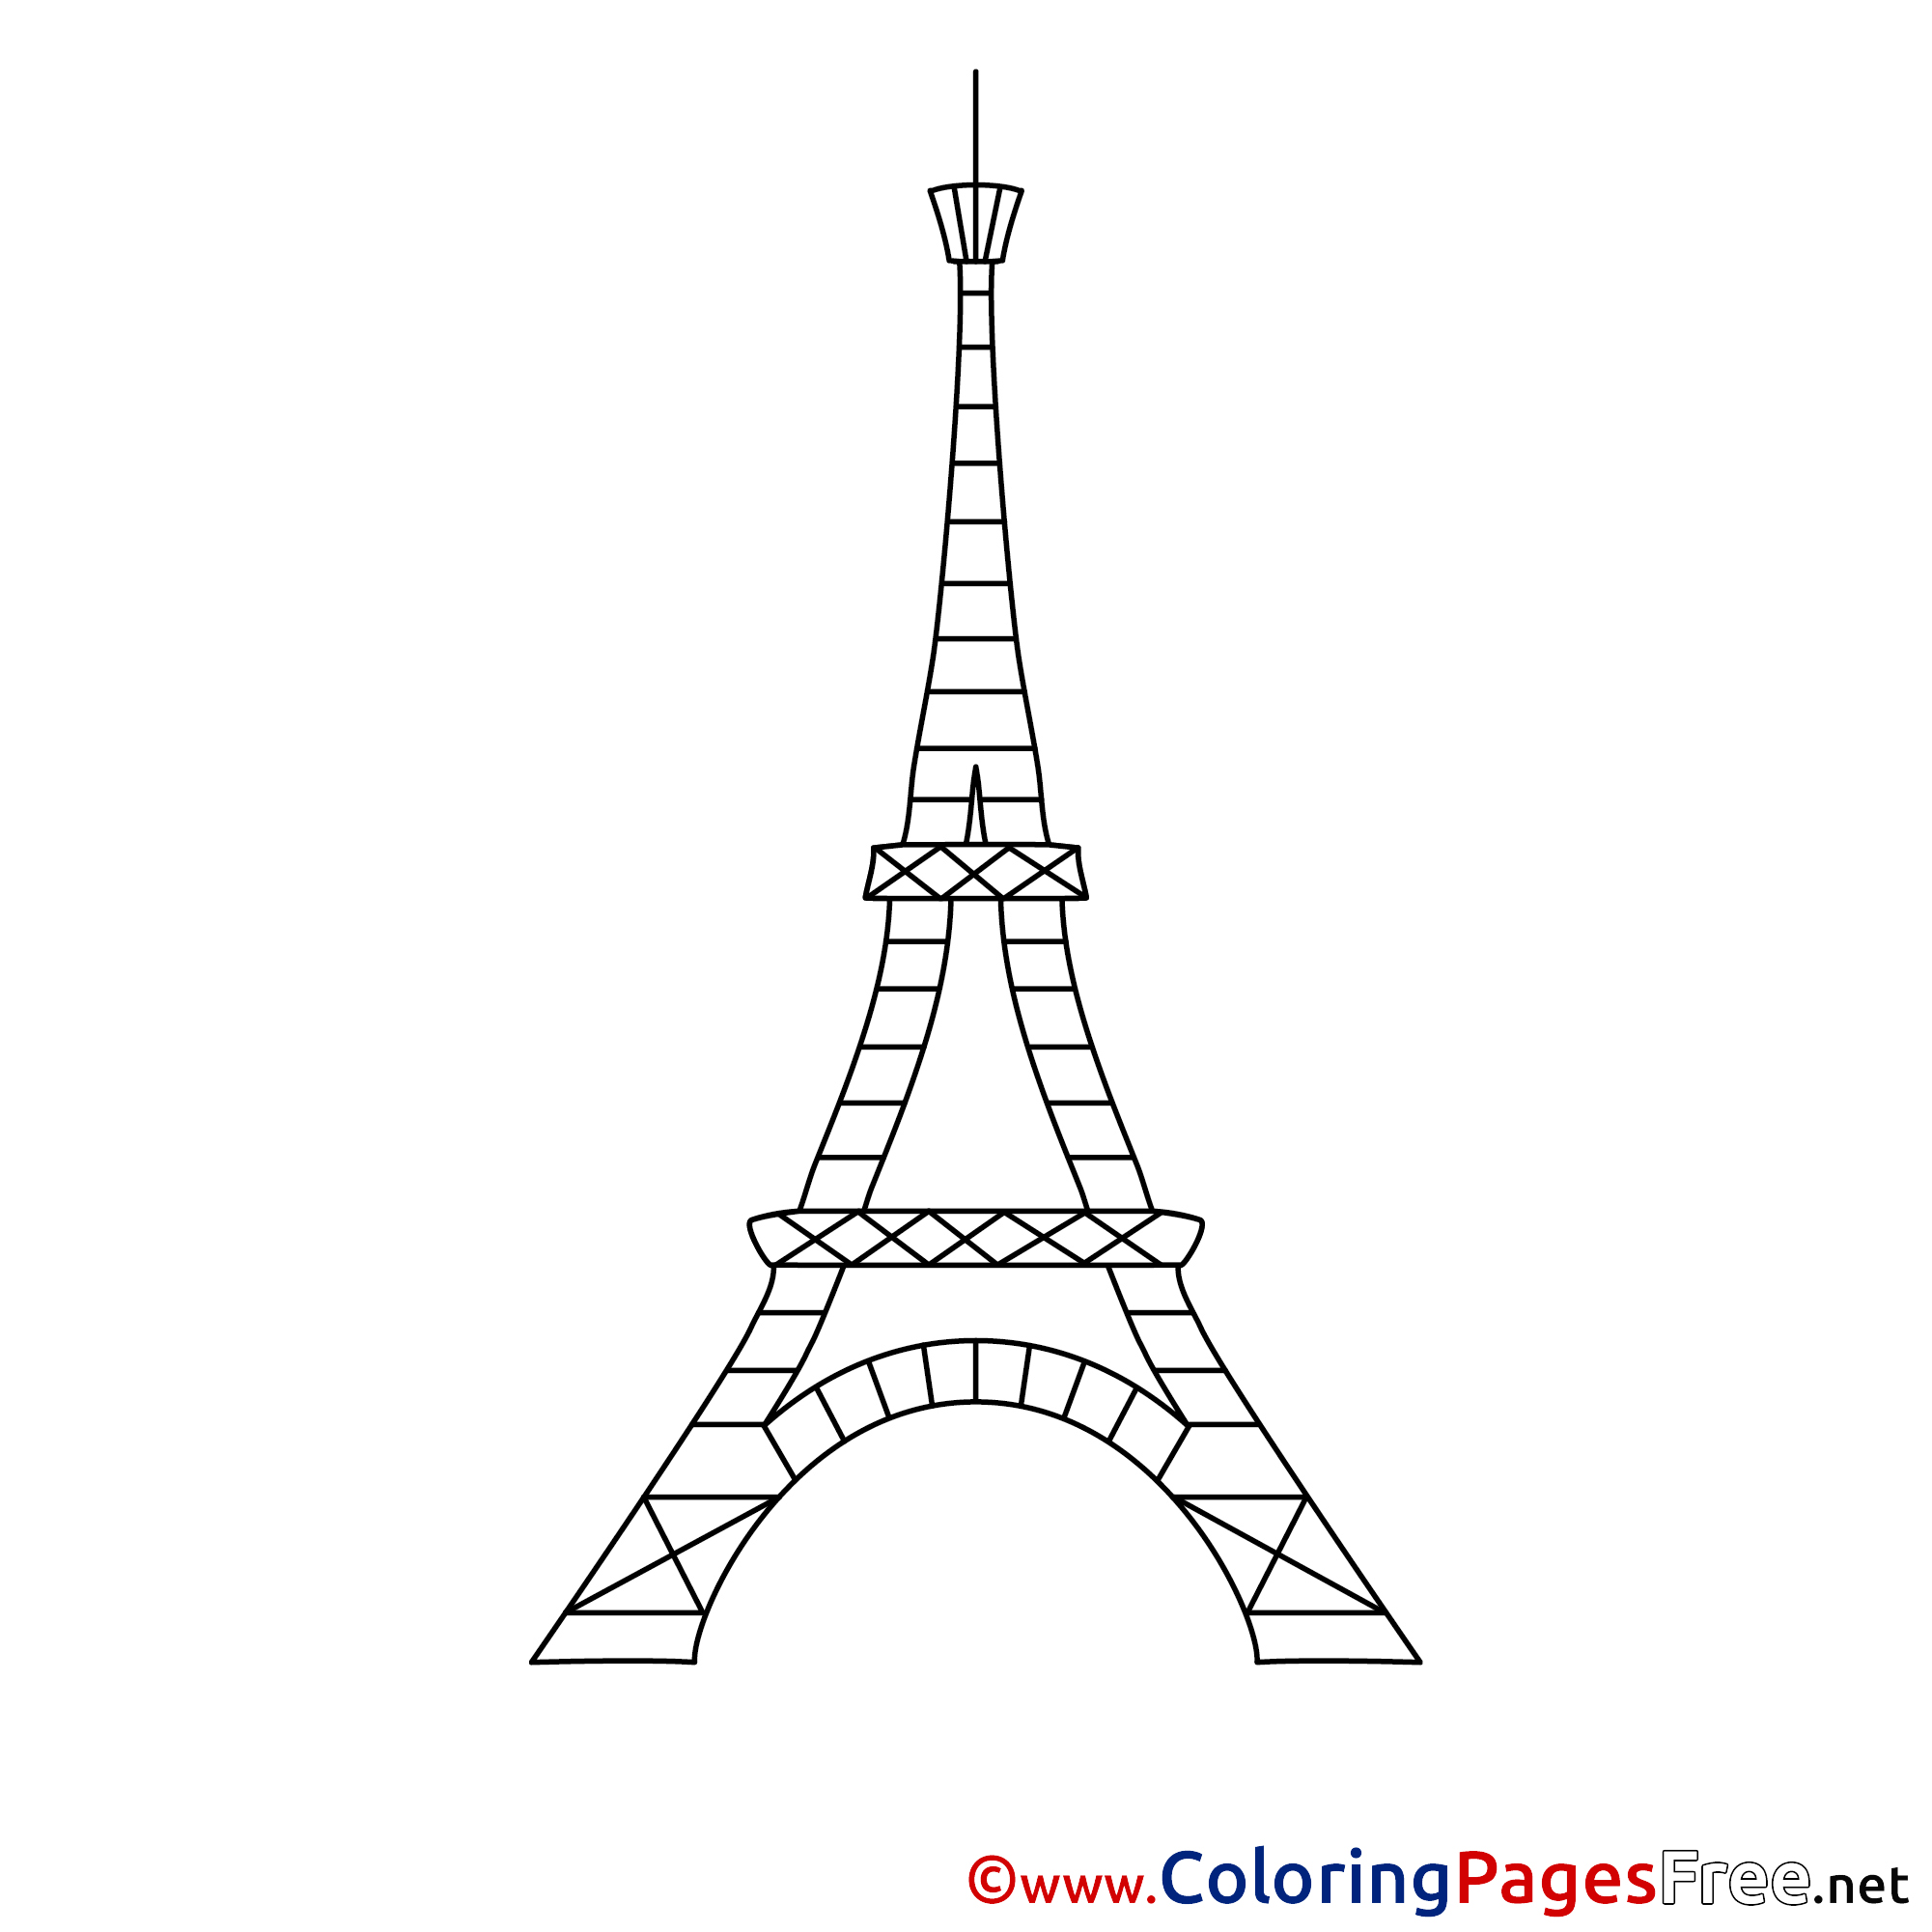 Eiffel tower children download colouring page altavistaventures Image collections